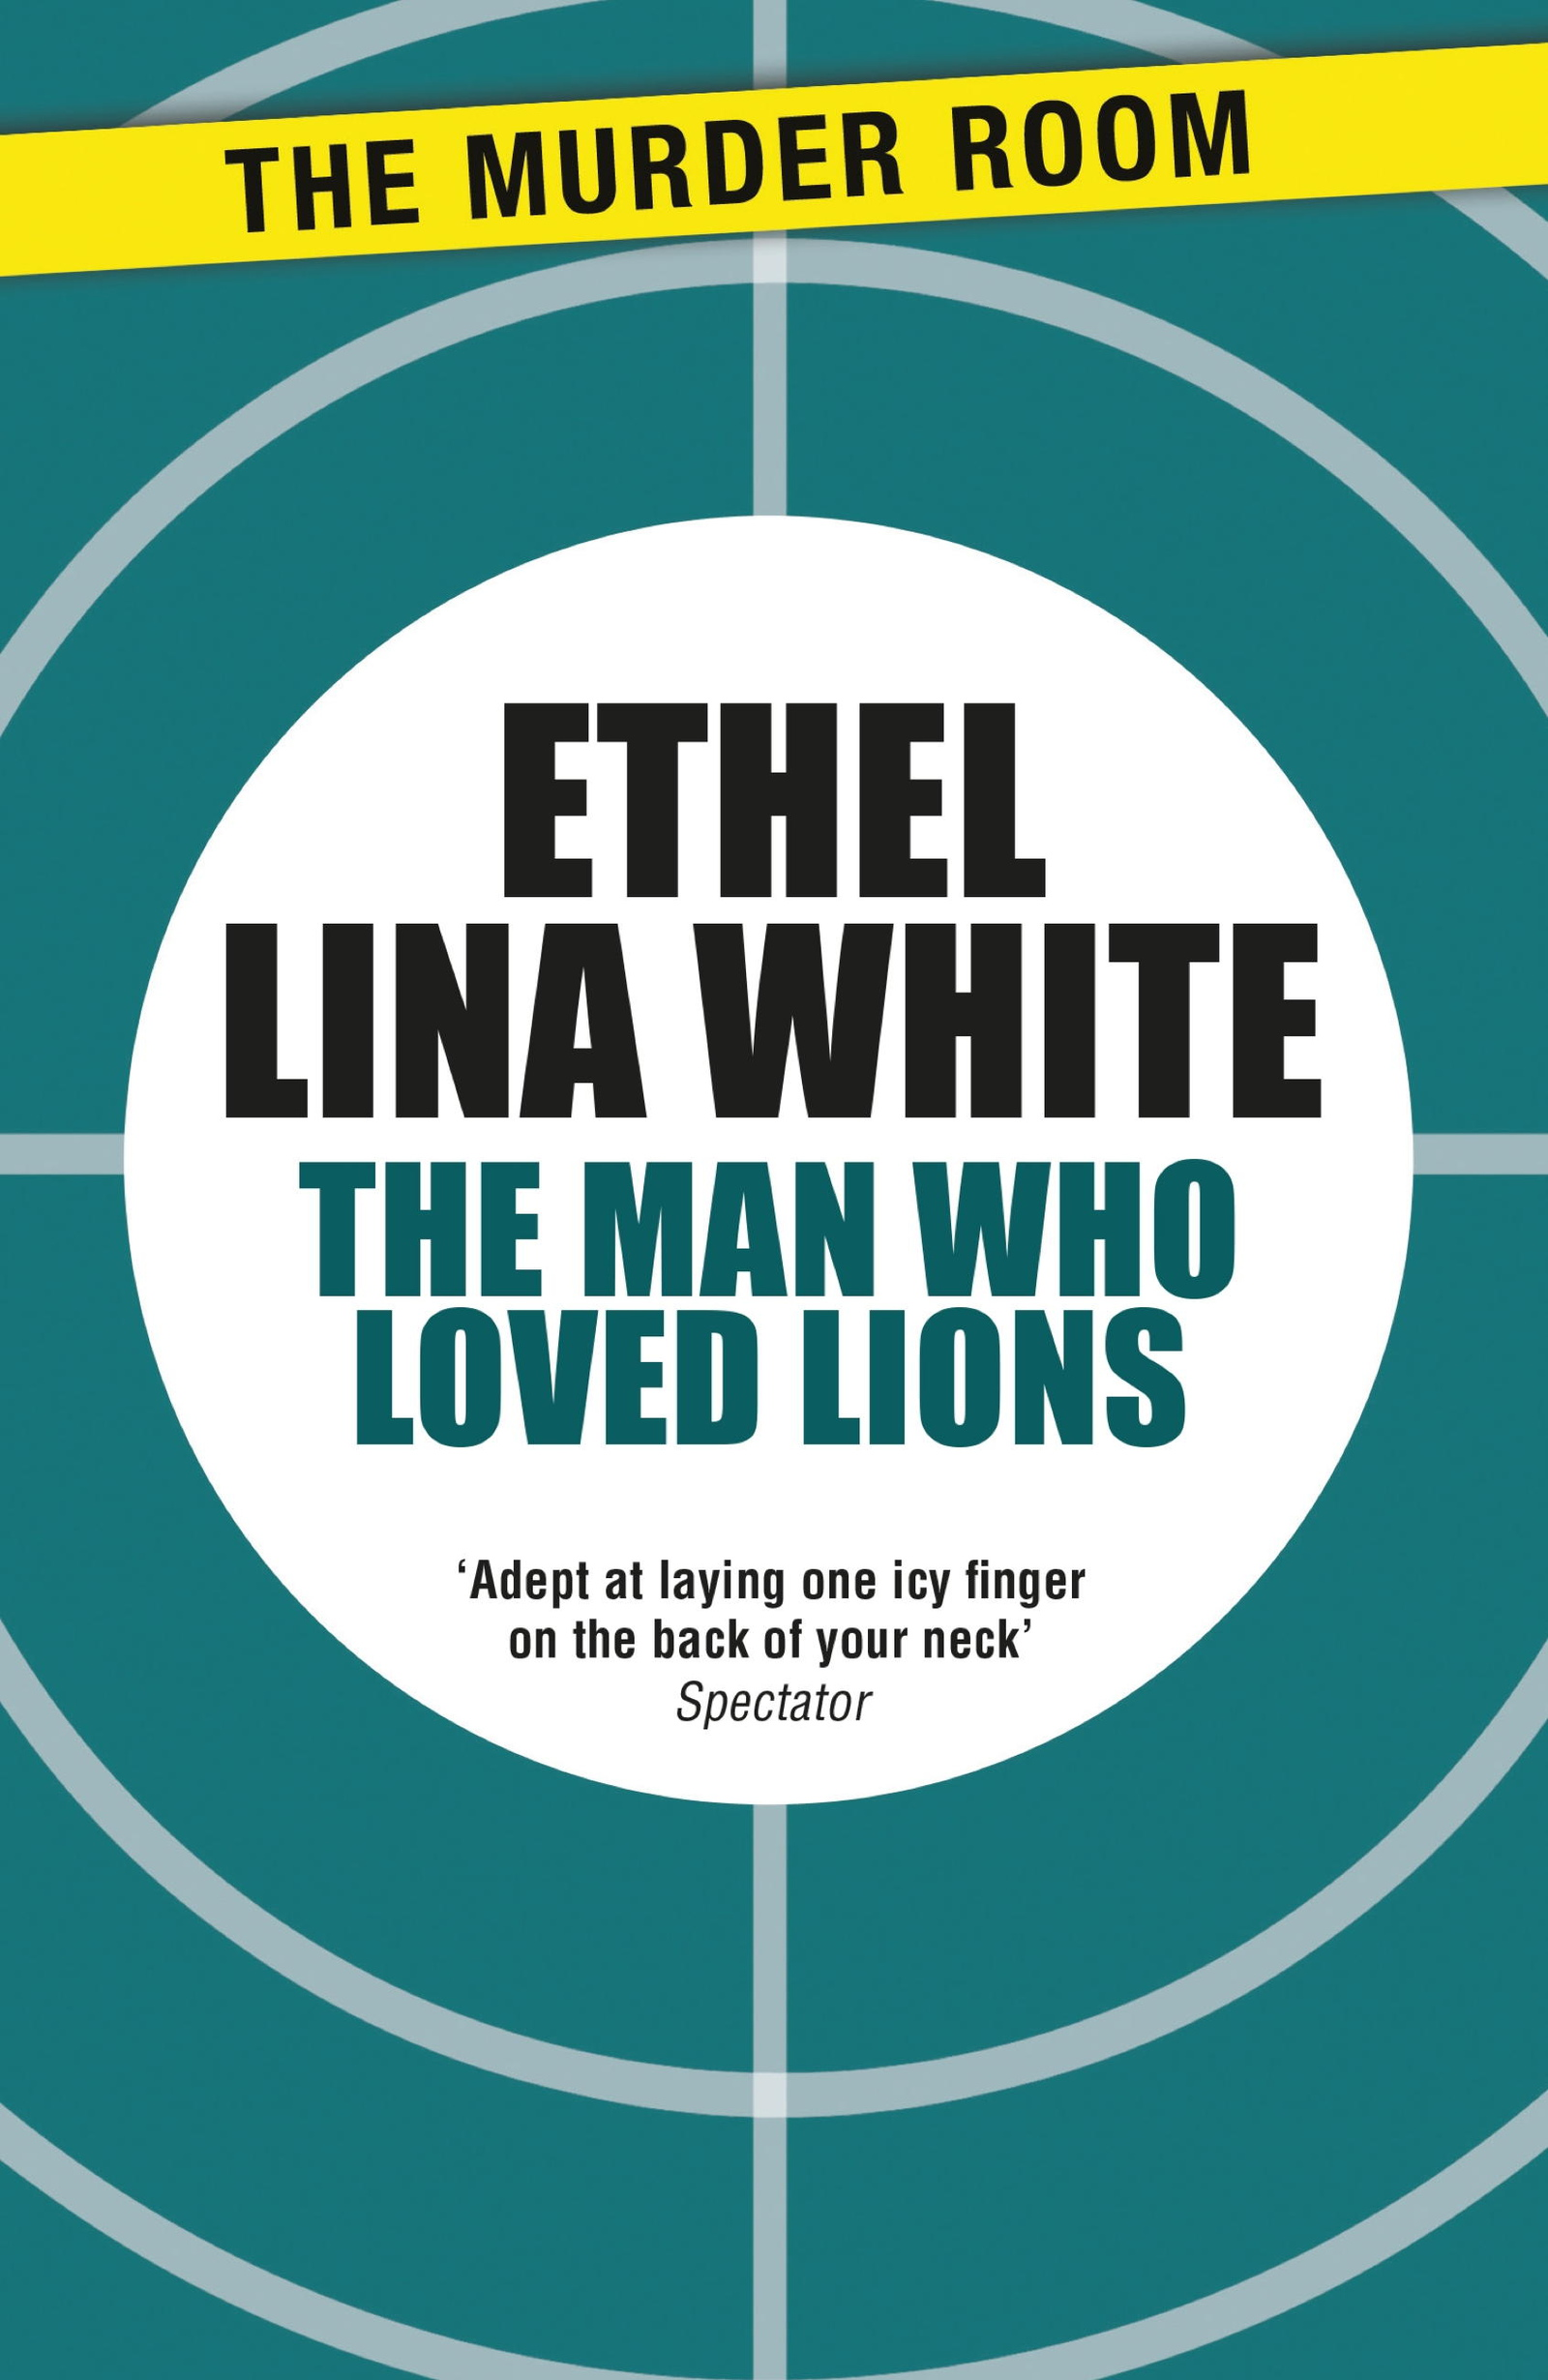 The Man Who Loved Lions